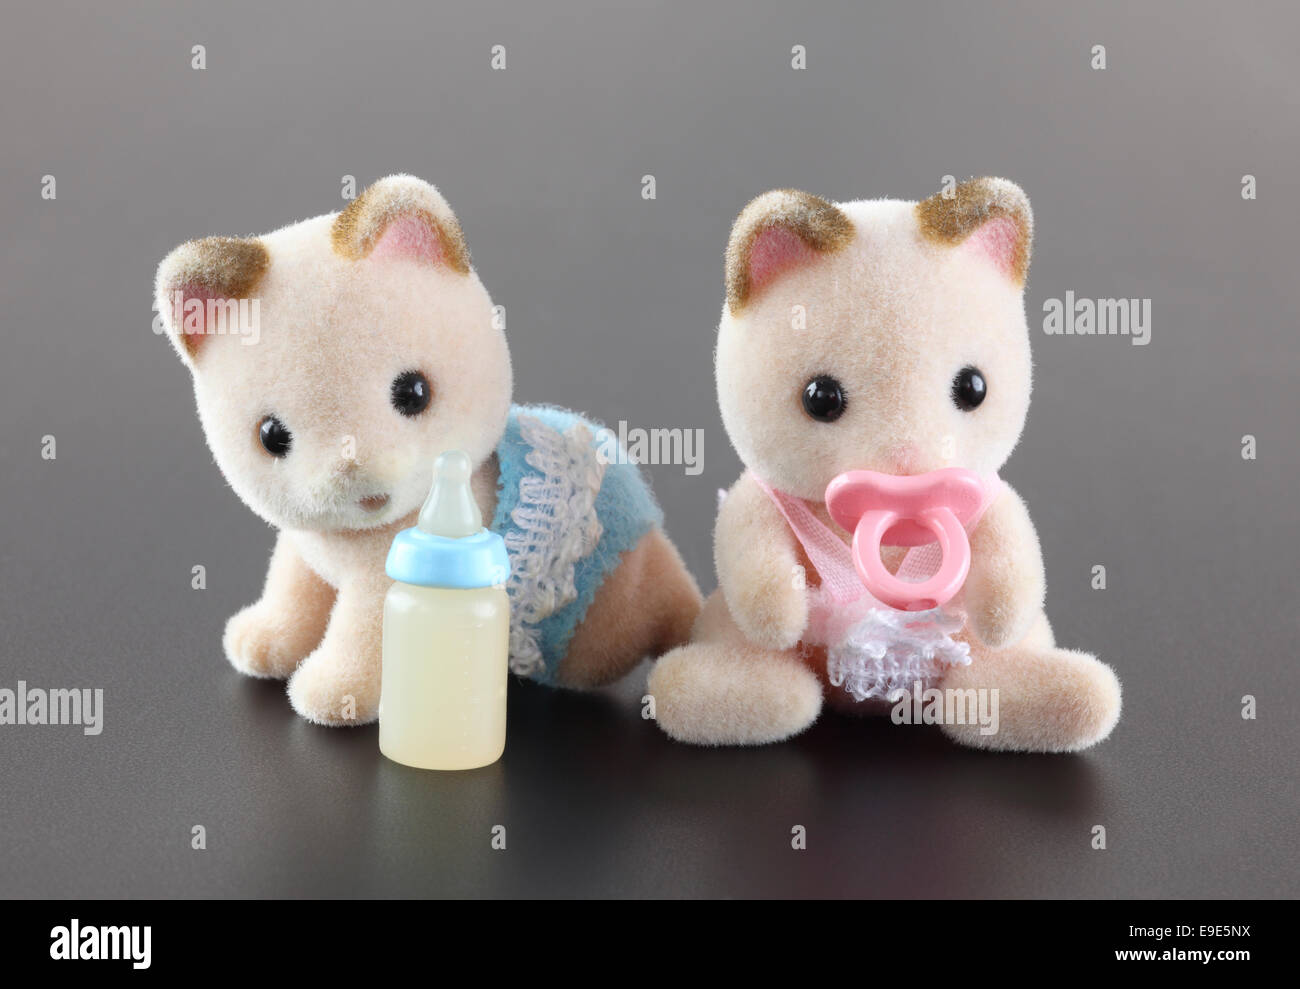 Tambov, Russian Federation - October 04, 2013 Sylvanian family kittens toy figures on gray background. Studio shot. - Stock Image